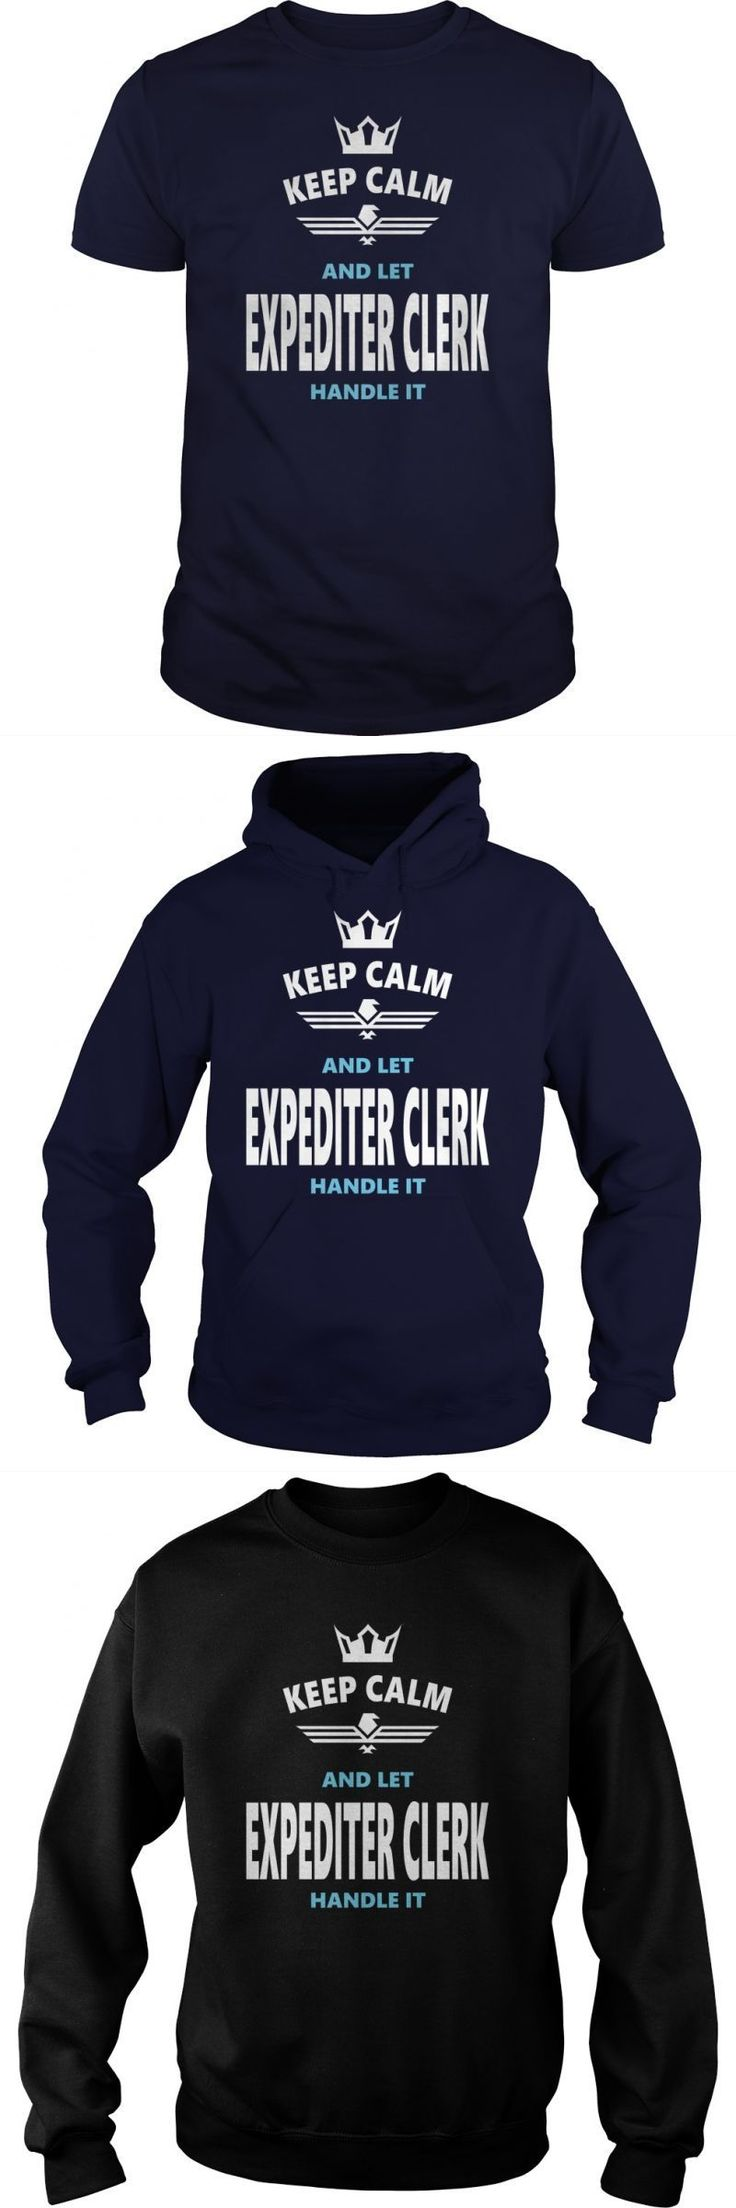 EXPEDITER CLERK JOBS T-SHIRT GUYS LADIES YOUTH TEE HOODIE SWEAT SHIRT V-NECK UNISEX SUNFROG BESTSELLER...FIND YOUR JOB HERE:    Https://www.***/Jobs/?45454  								  								 Guys Tee Hoodie Sweat Shirt Ladies Tee Youth Tee Guys V-Neck Ladies V-Neck Unisex Tank Top Unisex Longsleeve Tee Bank Roll Mafia T Shirt Law Clerk T Shirt Chase Bank T Shirt T Shirt Blanche Neige Bank